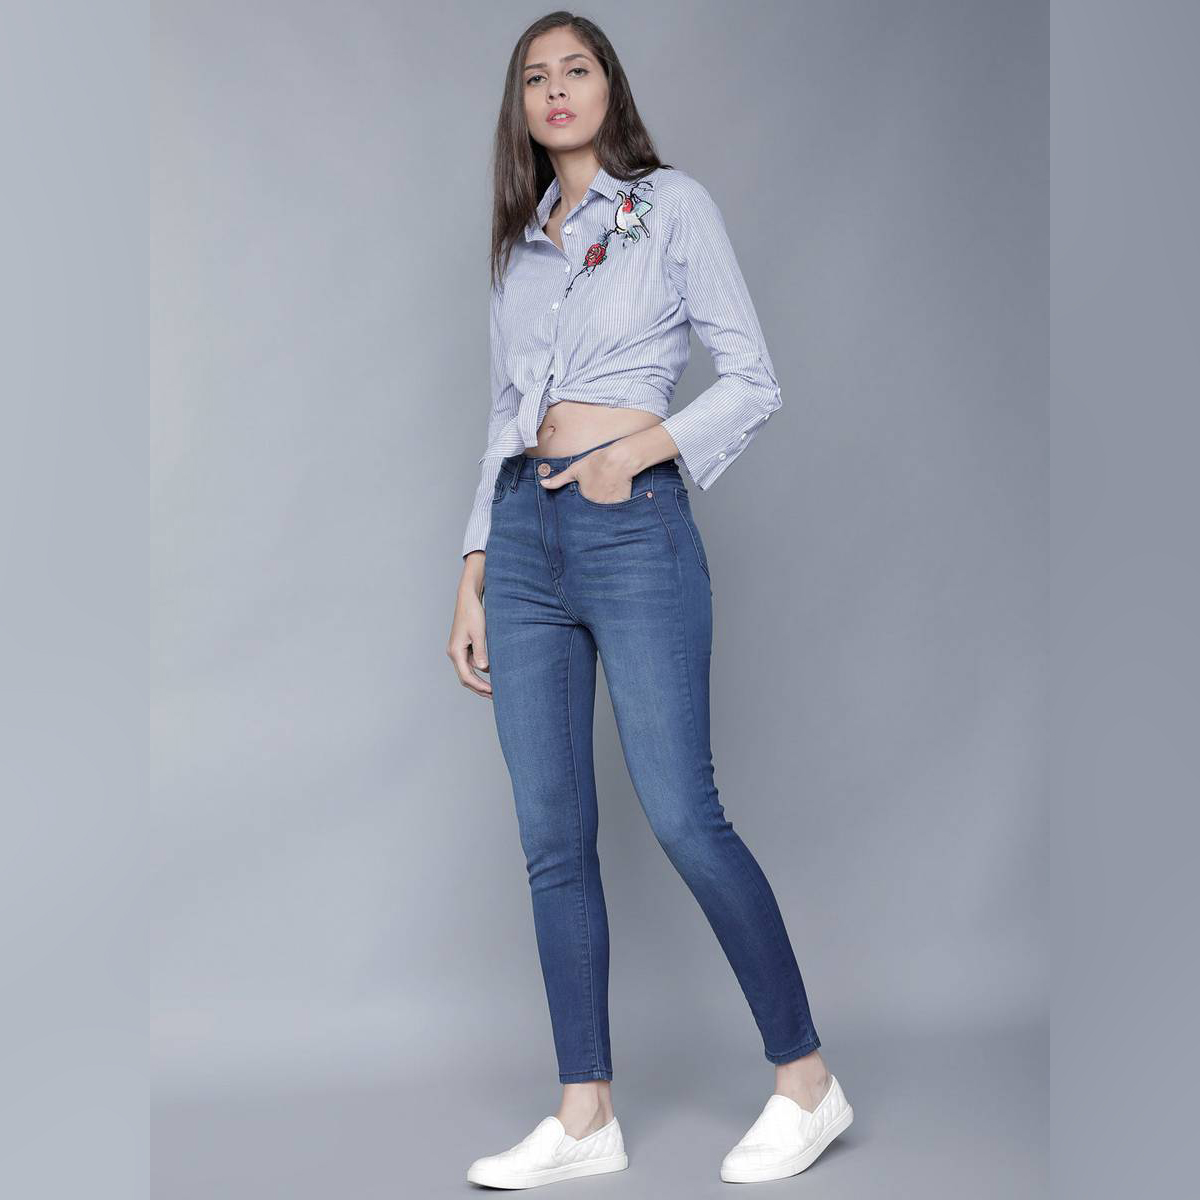 Blue jeans for her